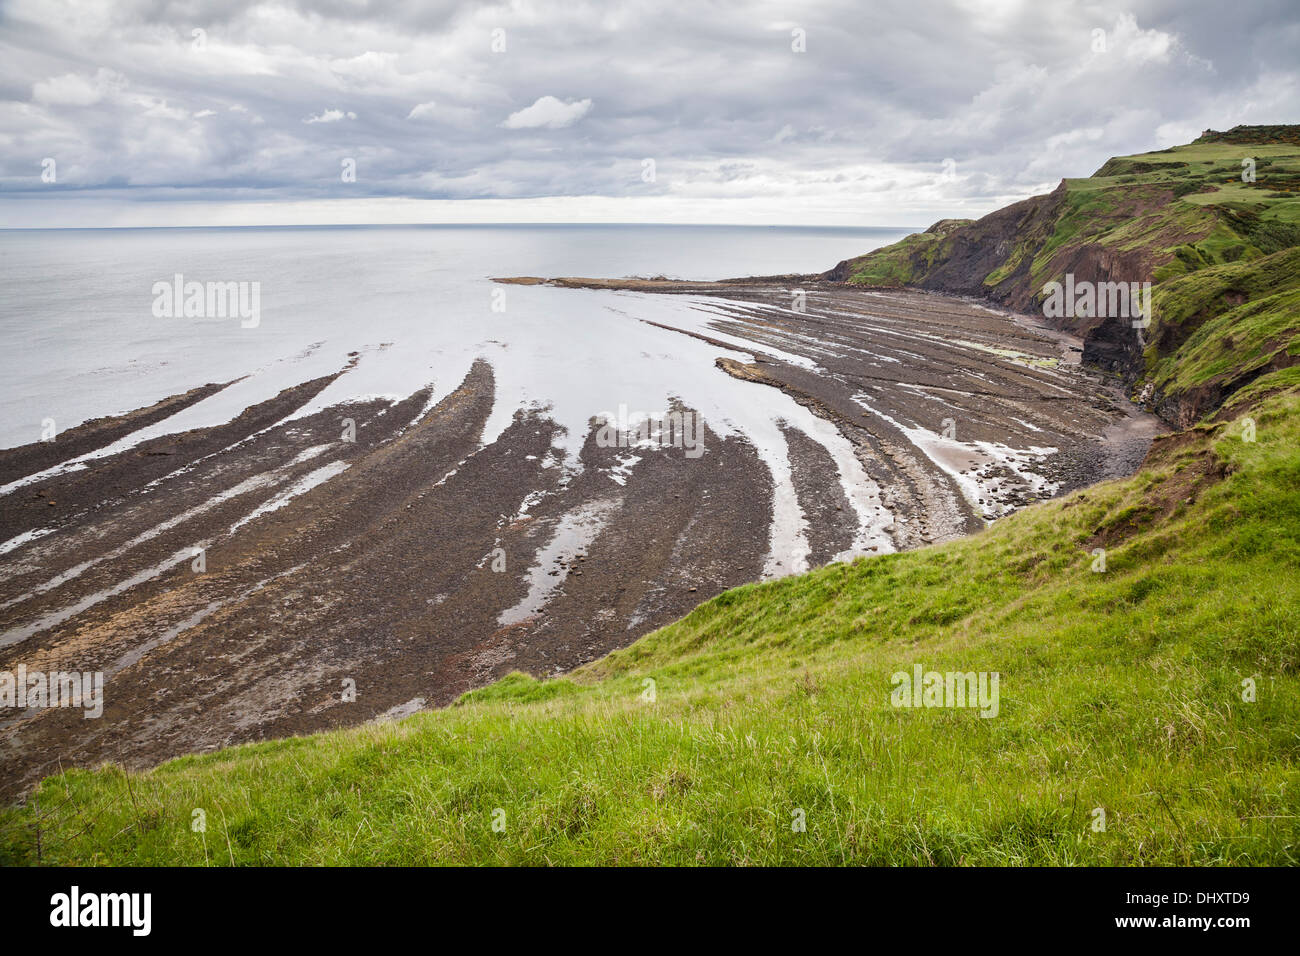 The Scars of Ravenscar, North Yorkshire. Stock Photo